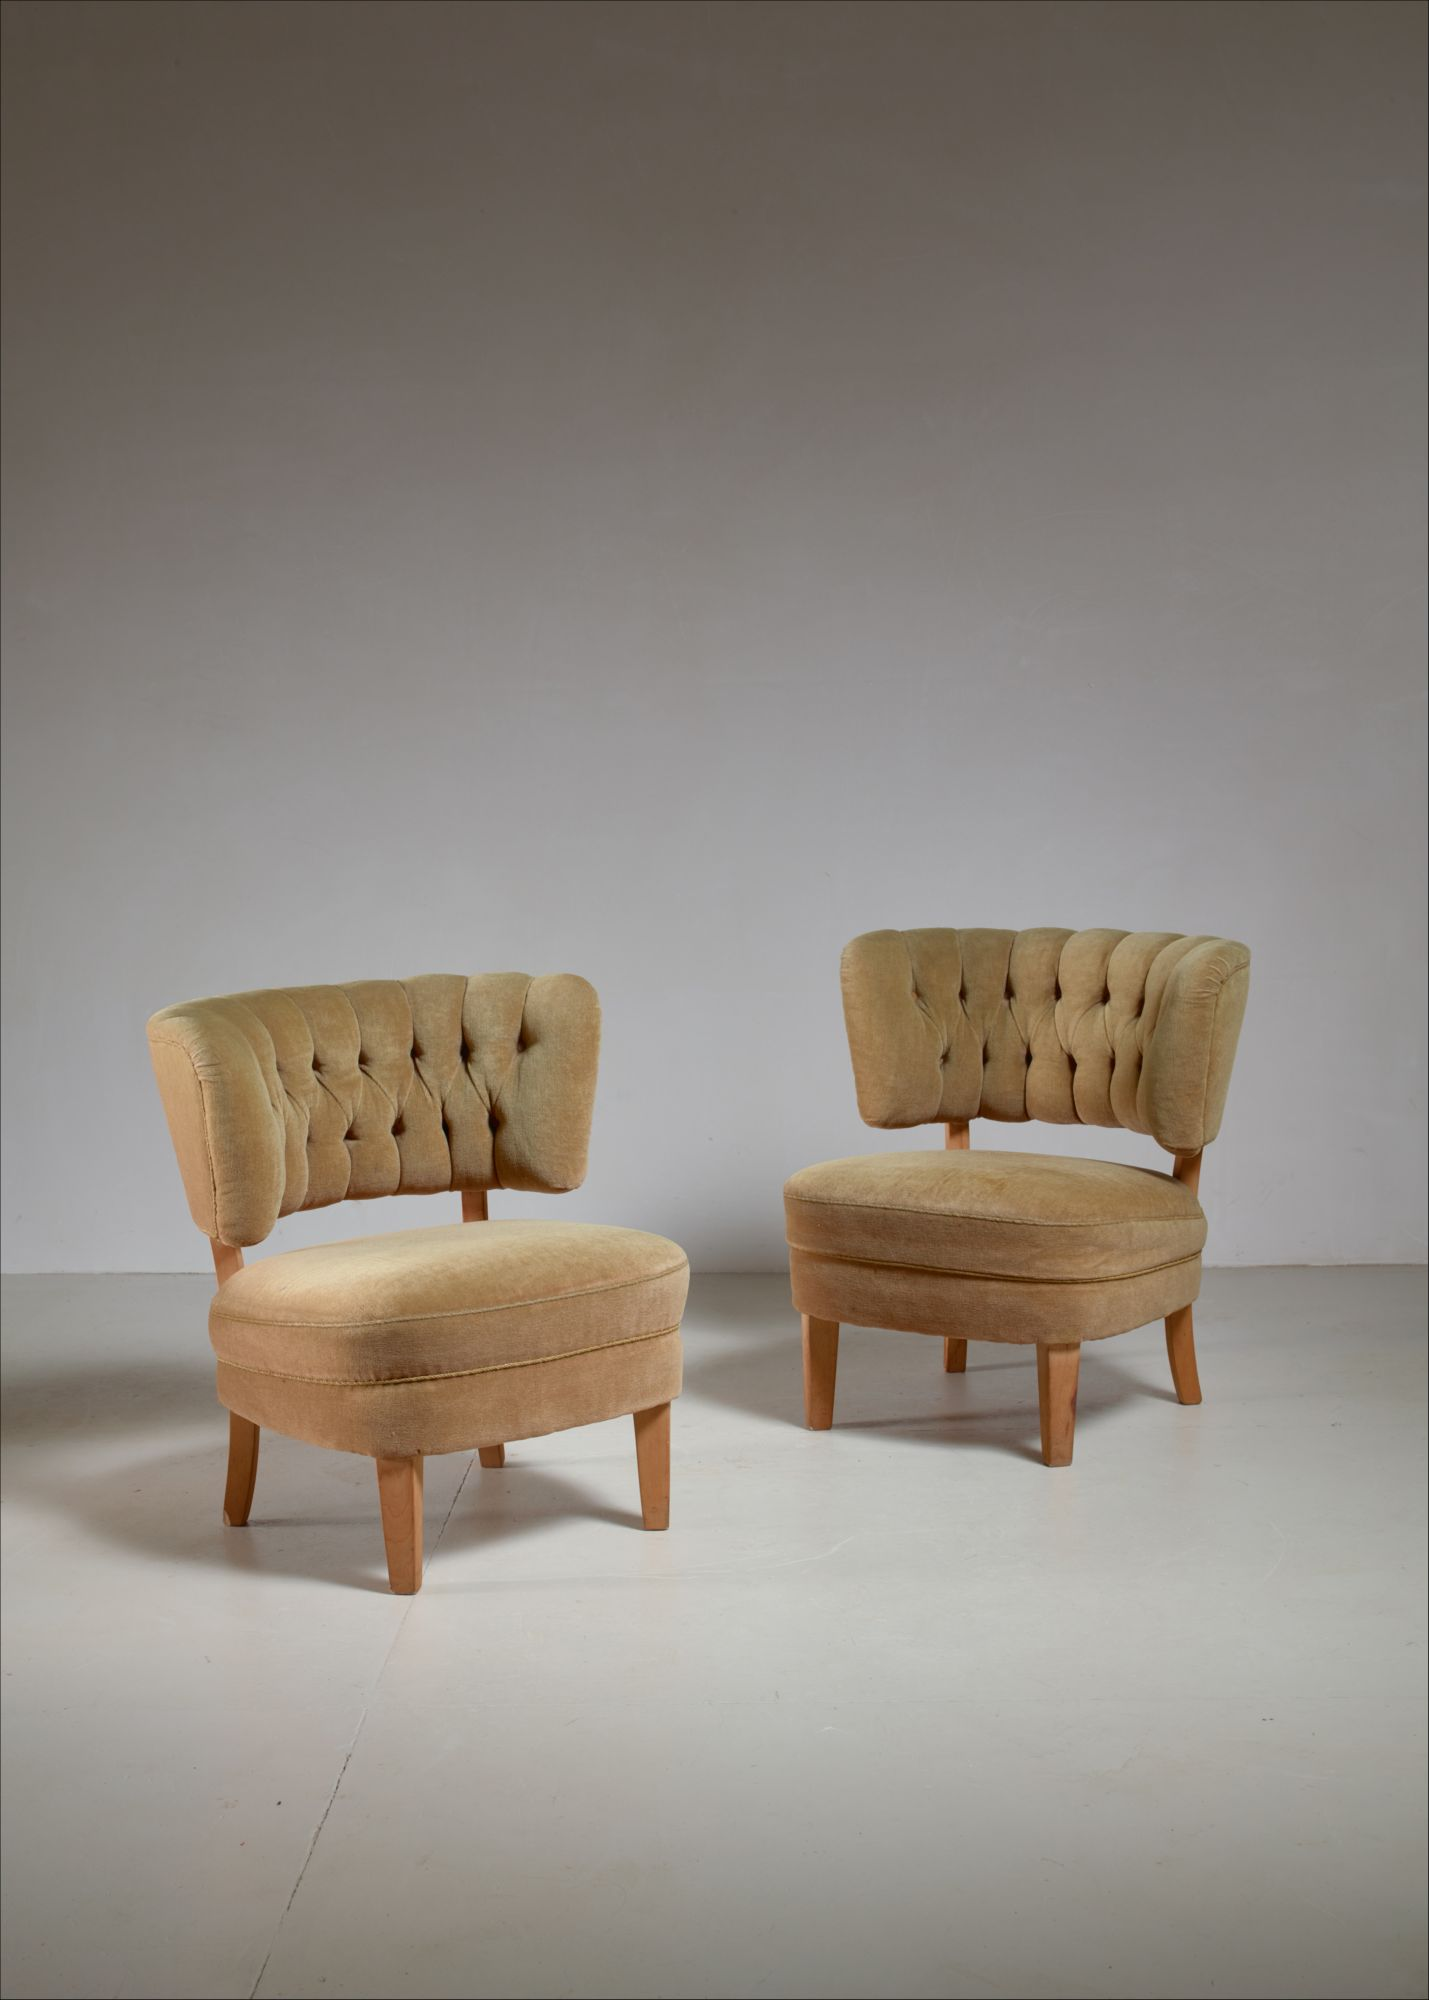 Awe Inspiring Otto Schulz Pair Of Lounge Chairs By Jio Mobler Sweden 1940S Spiritservingveterans Wood Chair Design Ideas Spiritservingveteransorg